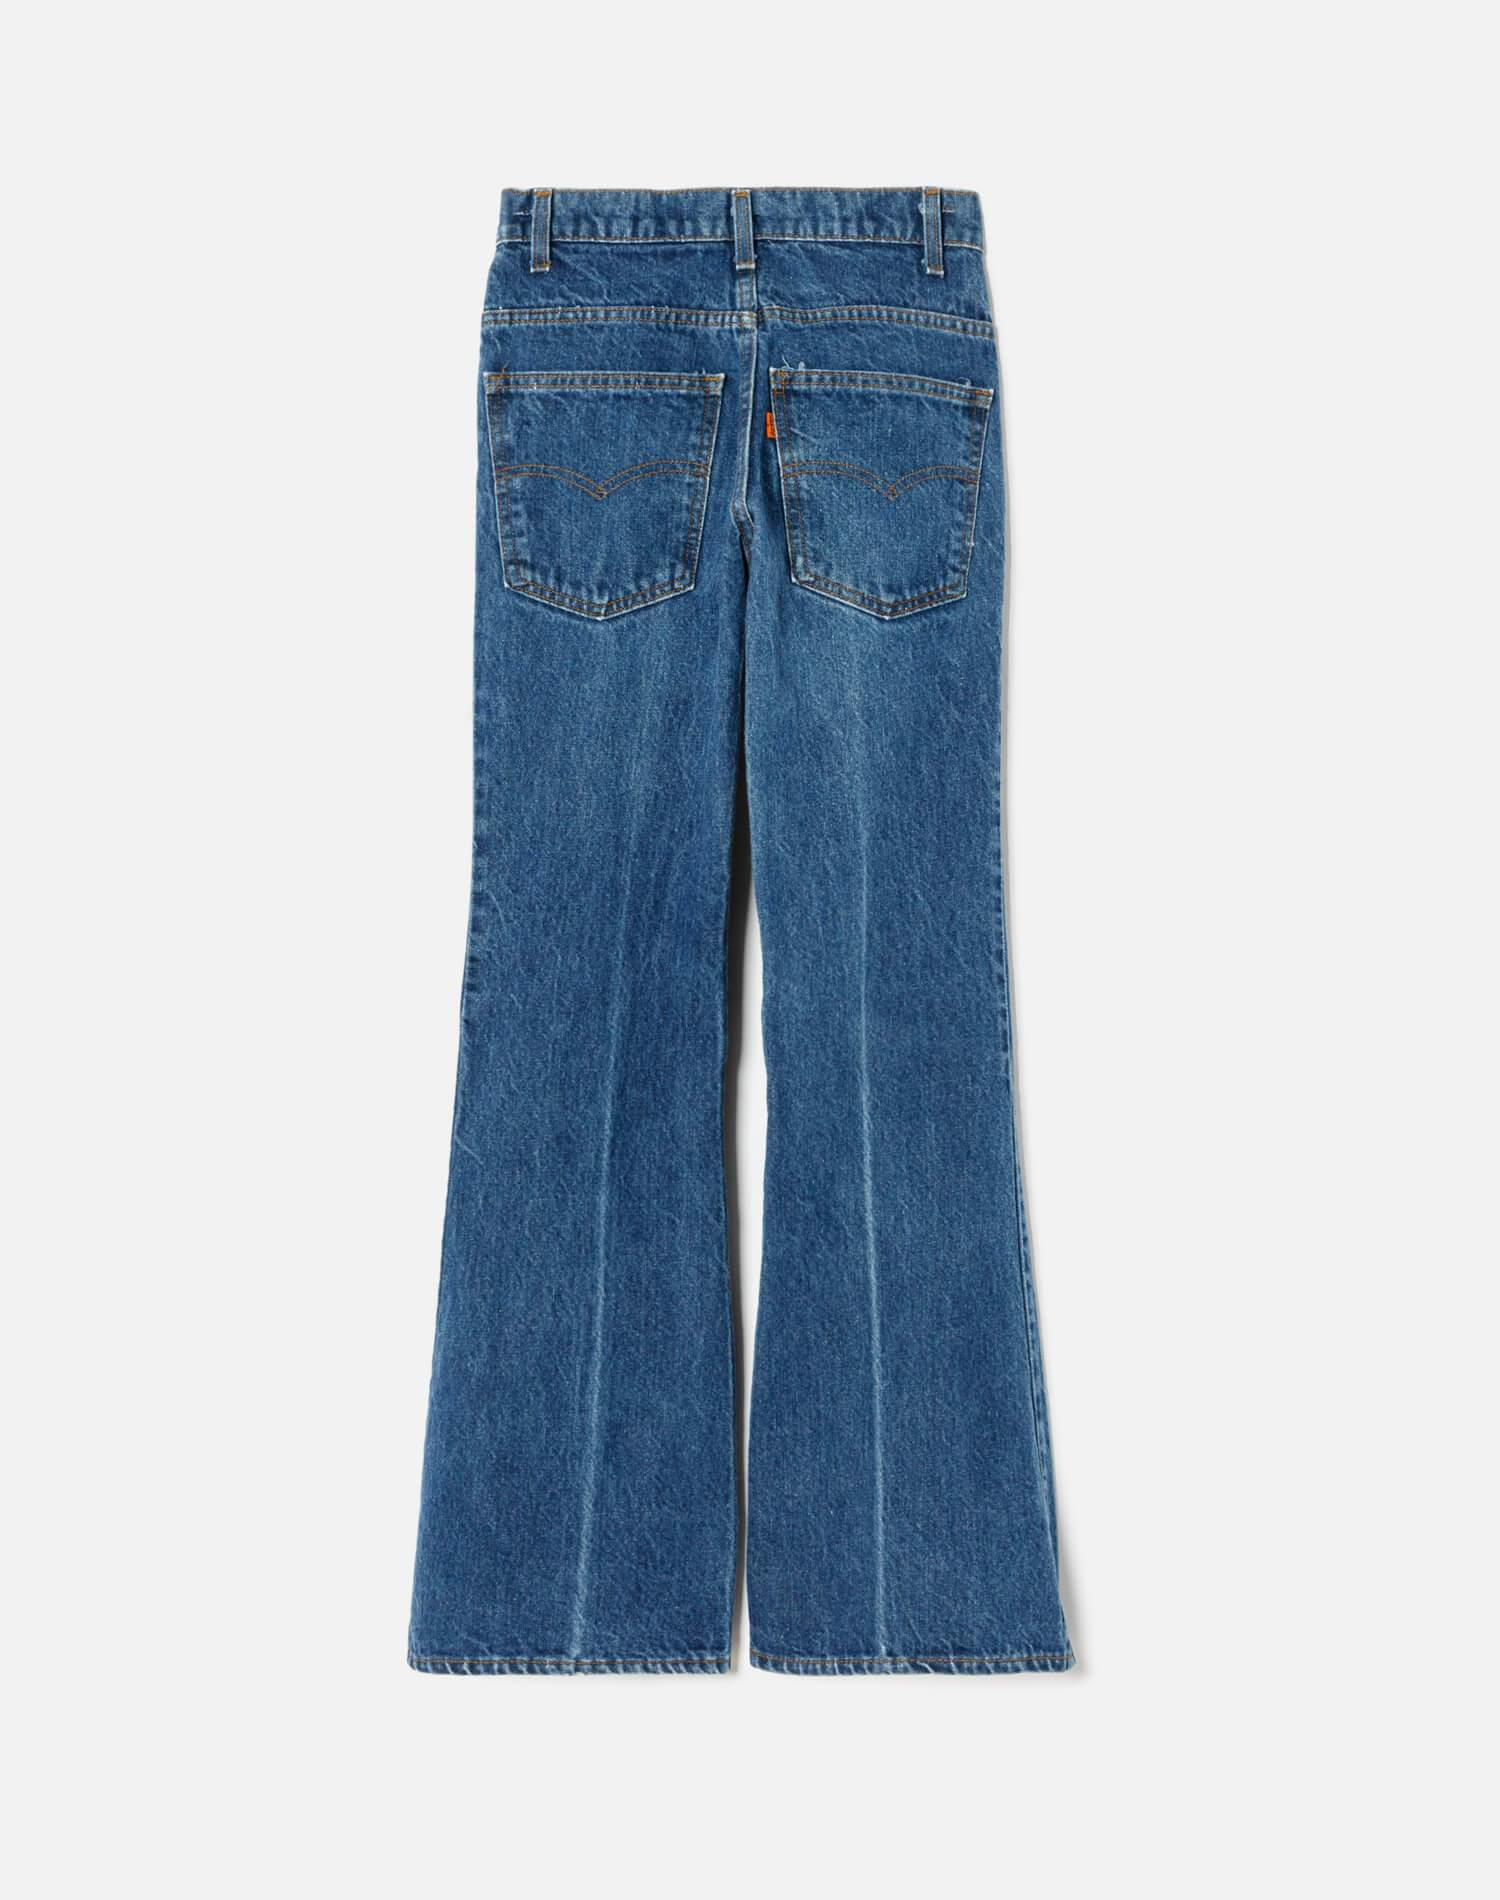 1970s Vintage Levi's Low Rise Wide Leg With Rip Size 25 - #171 1